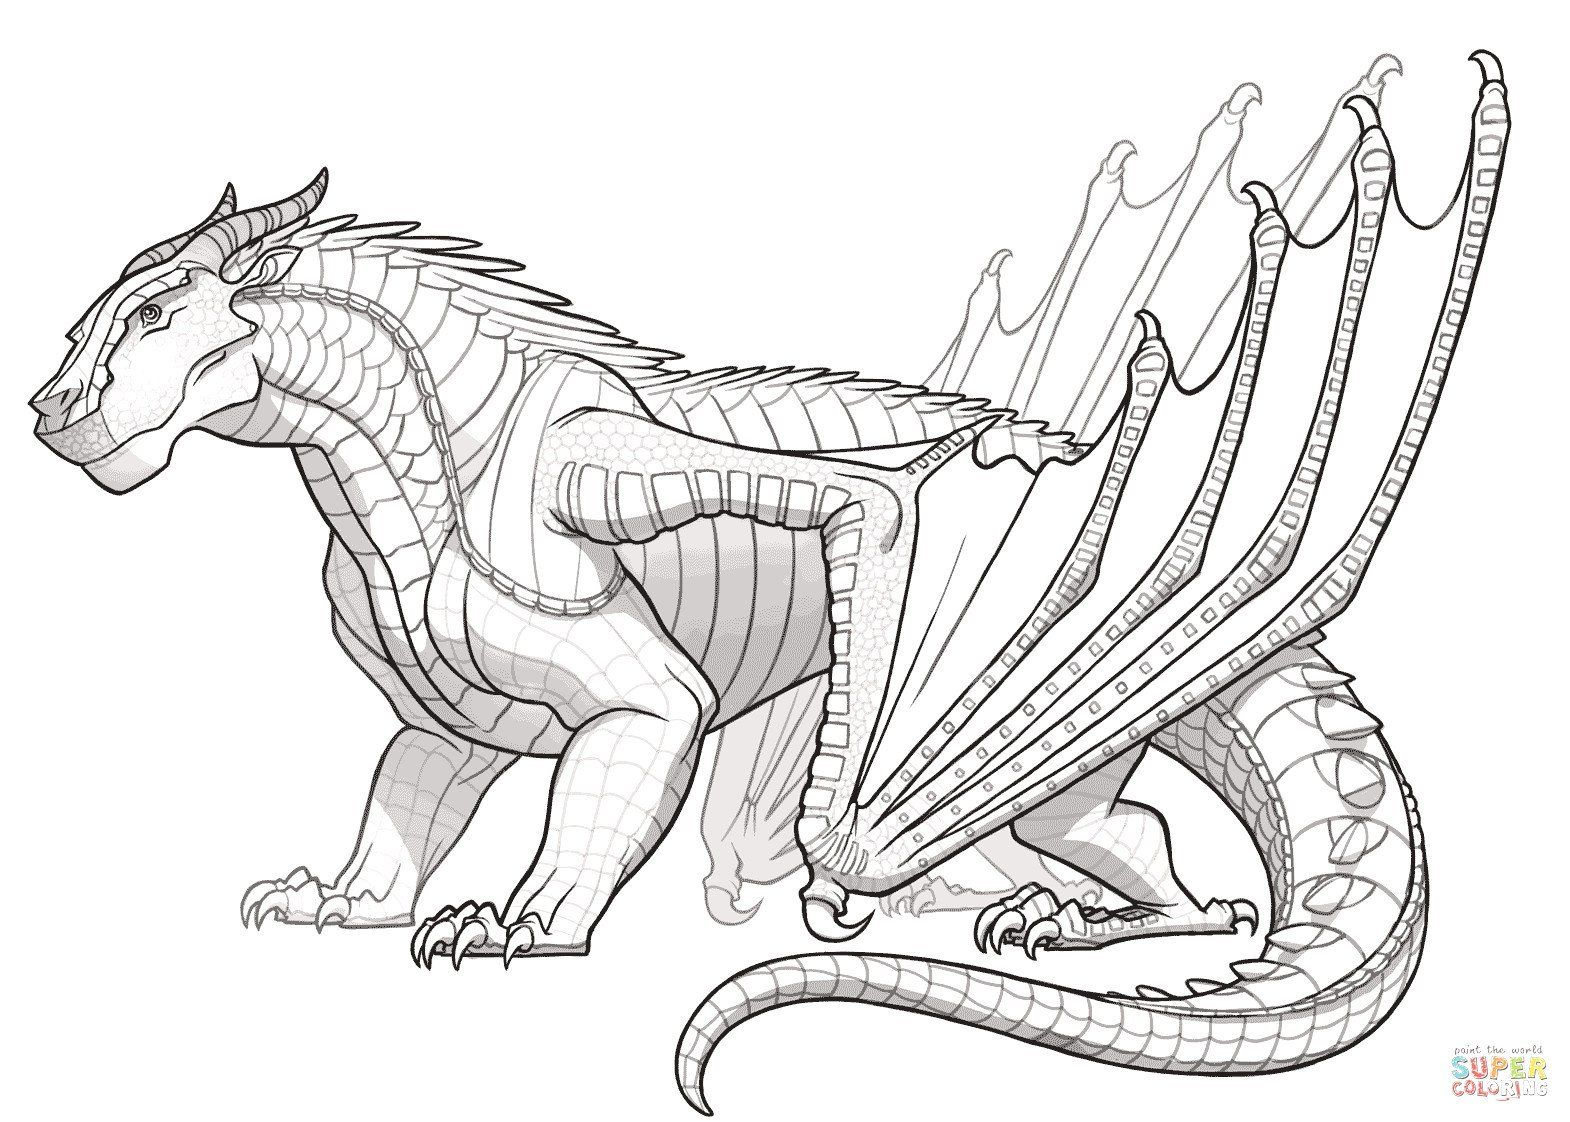 Realistic Dog Coloring Pages Luxury Fresh Fire Dog Coloring Sheet Cleanty Zoo Animal Coloring Pages Pokemon Coloring Pages Dragon Coloring Page